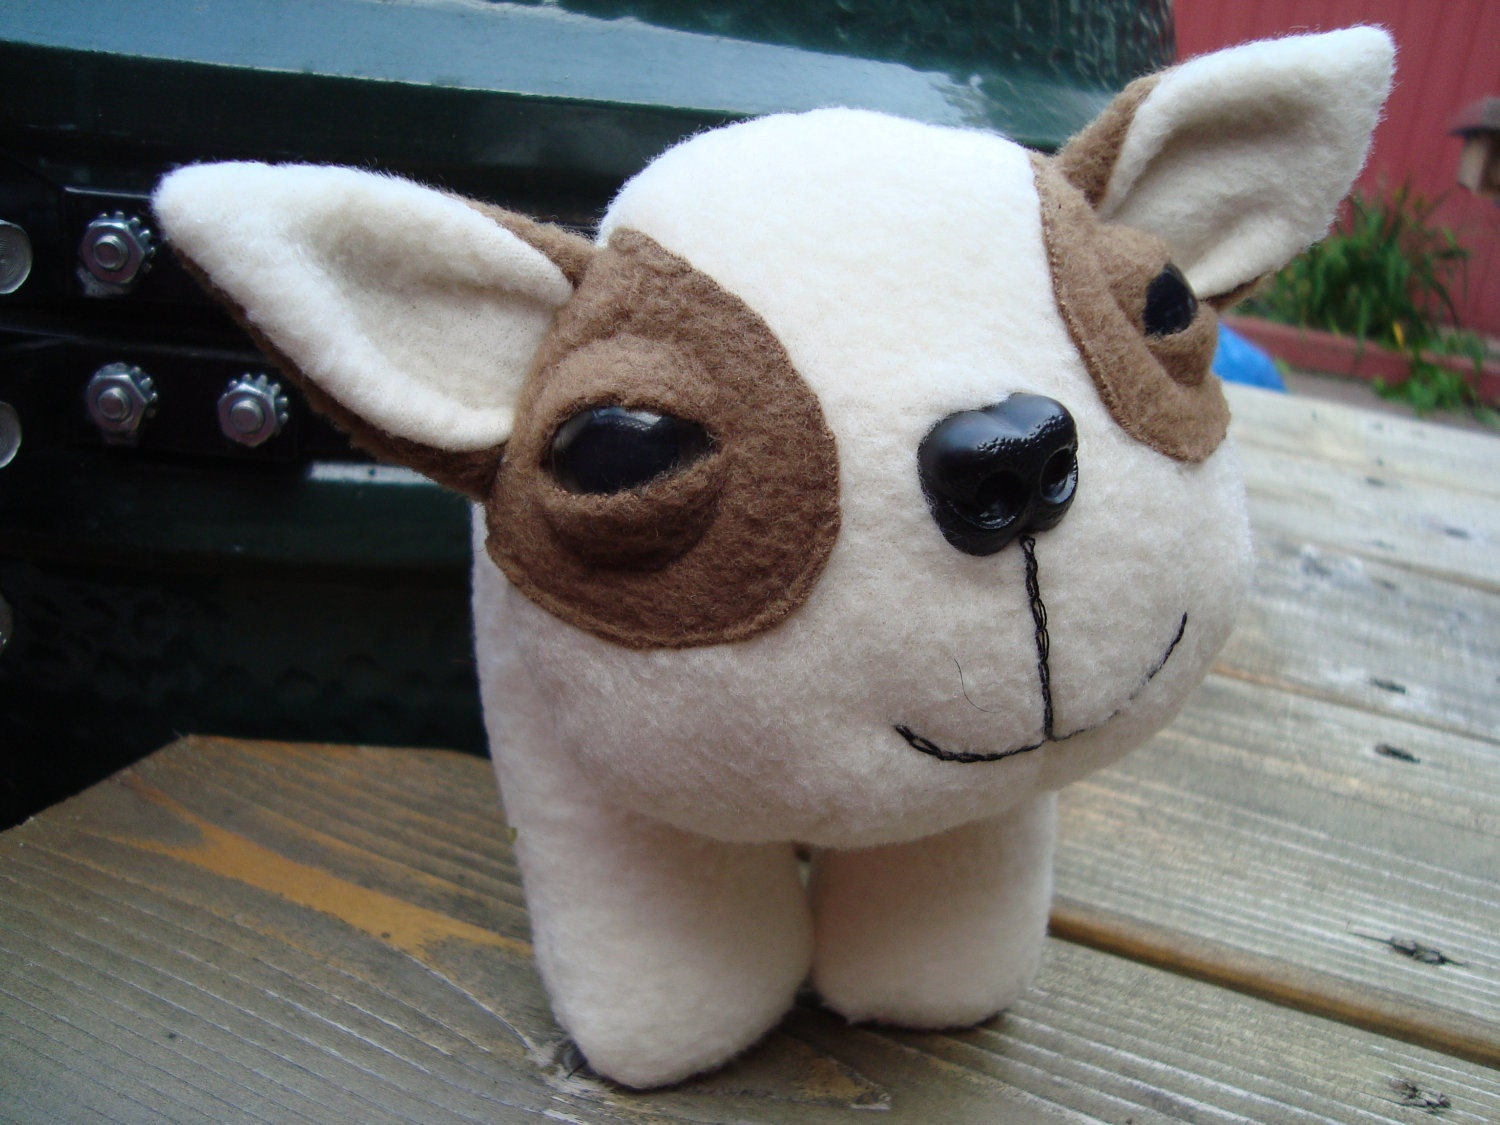 stuffed animal plush puppy dog in white and light brown fleece - Puff